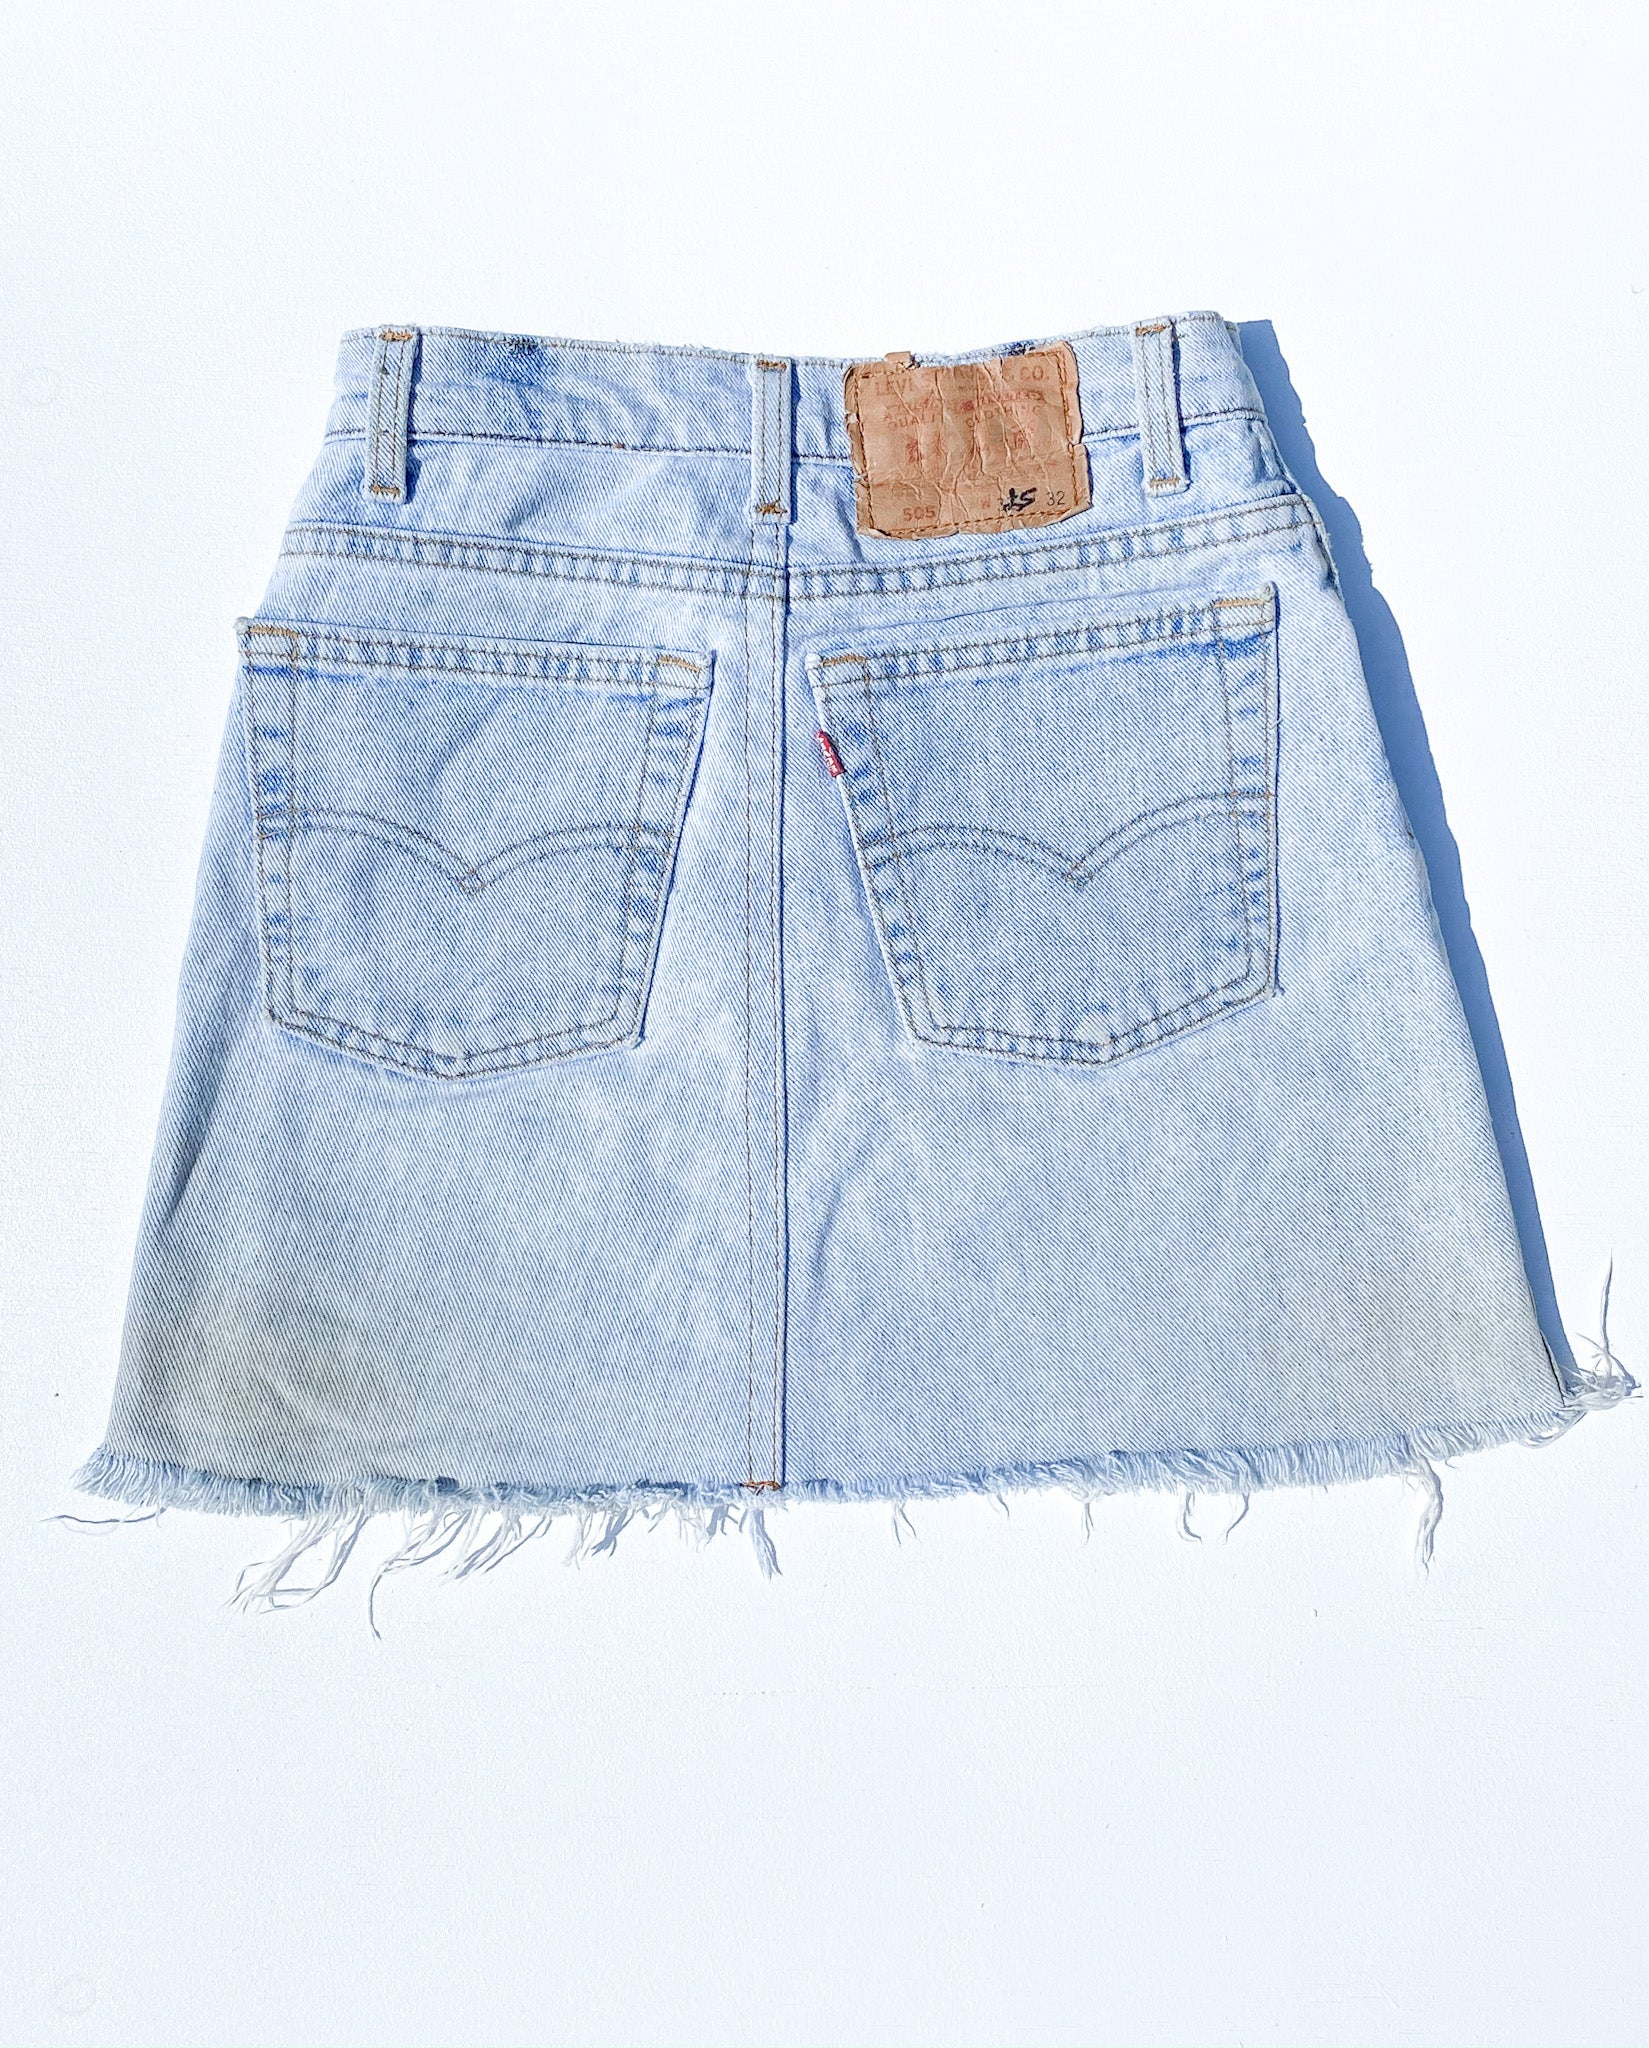 VINTAGE LEVI'S HIGH WAISTED DENIM SKIRT (24)